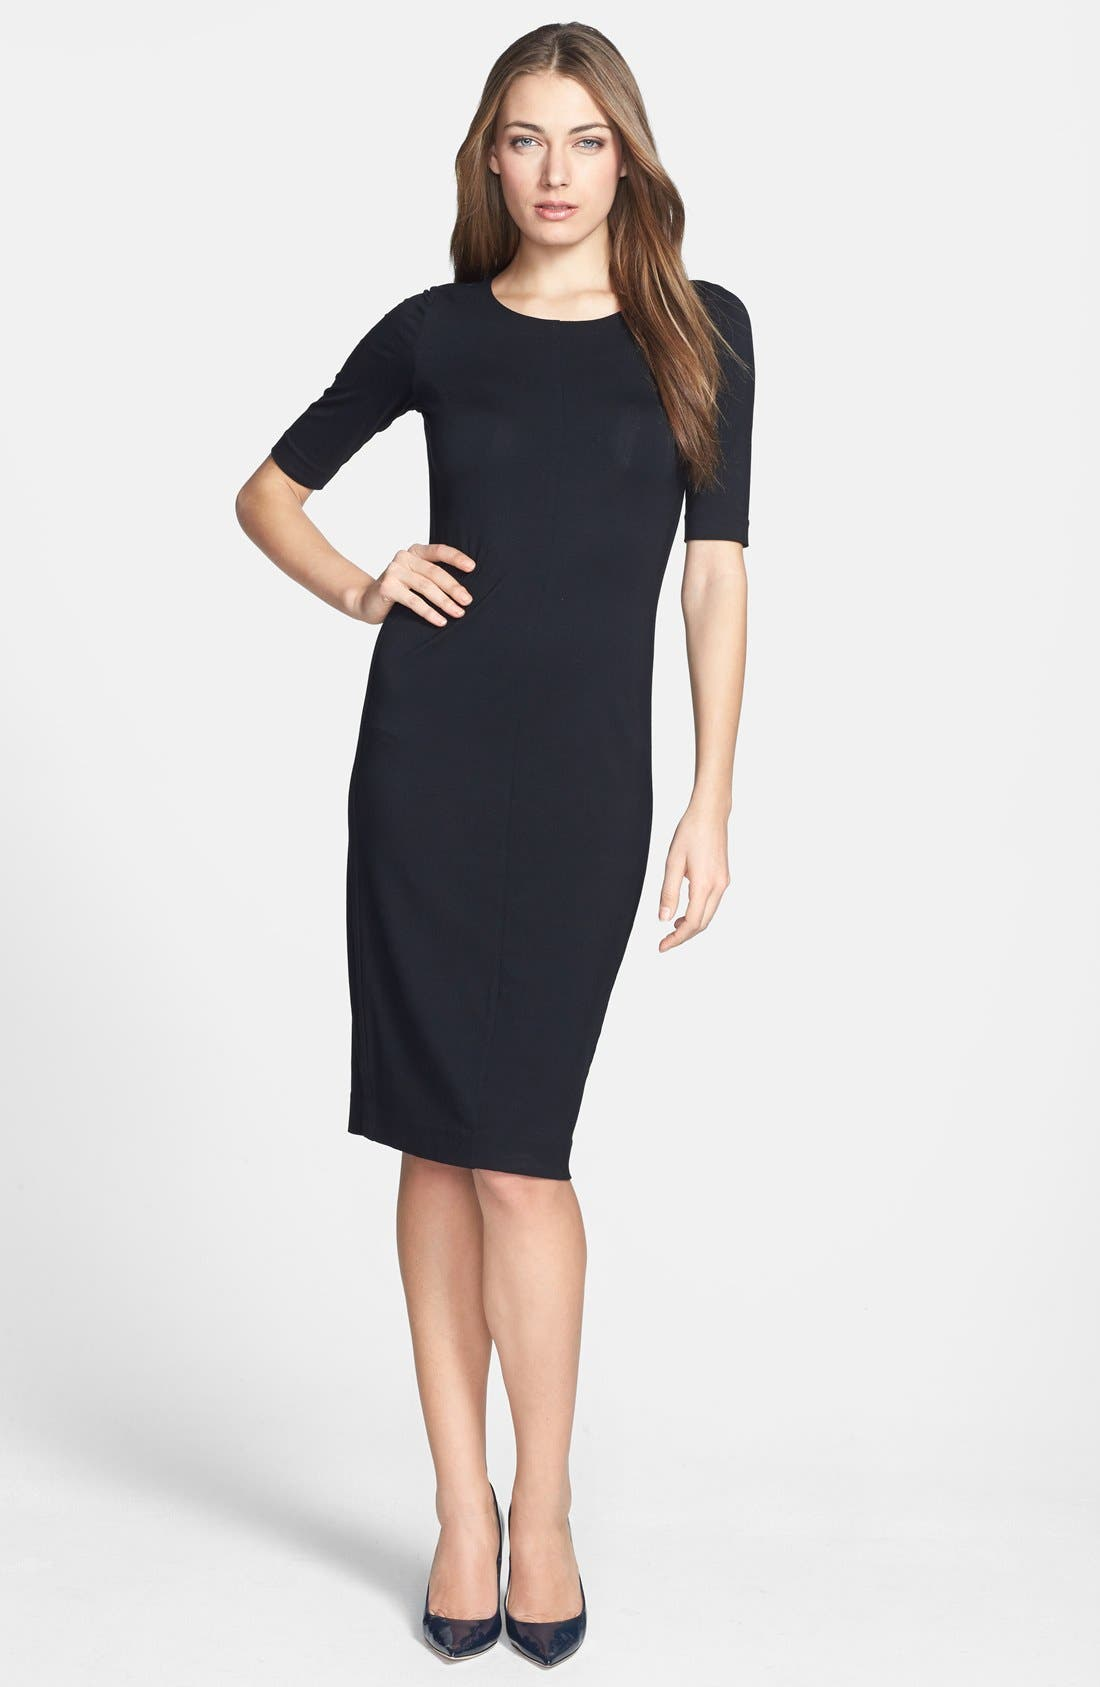 Main Image - Diane von Furstenberg 'Raquel' Knit Sheath Dress